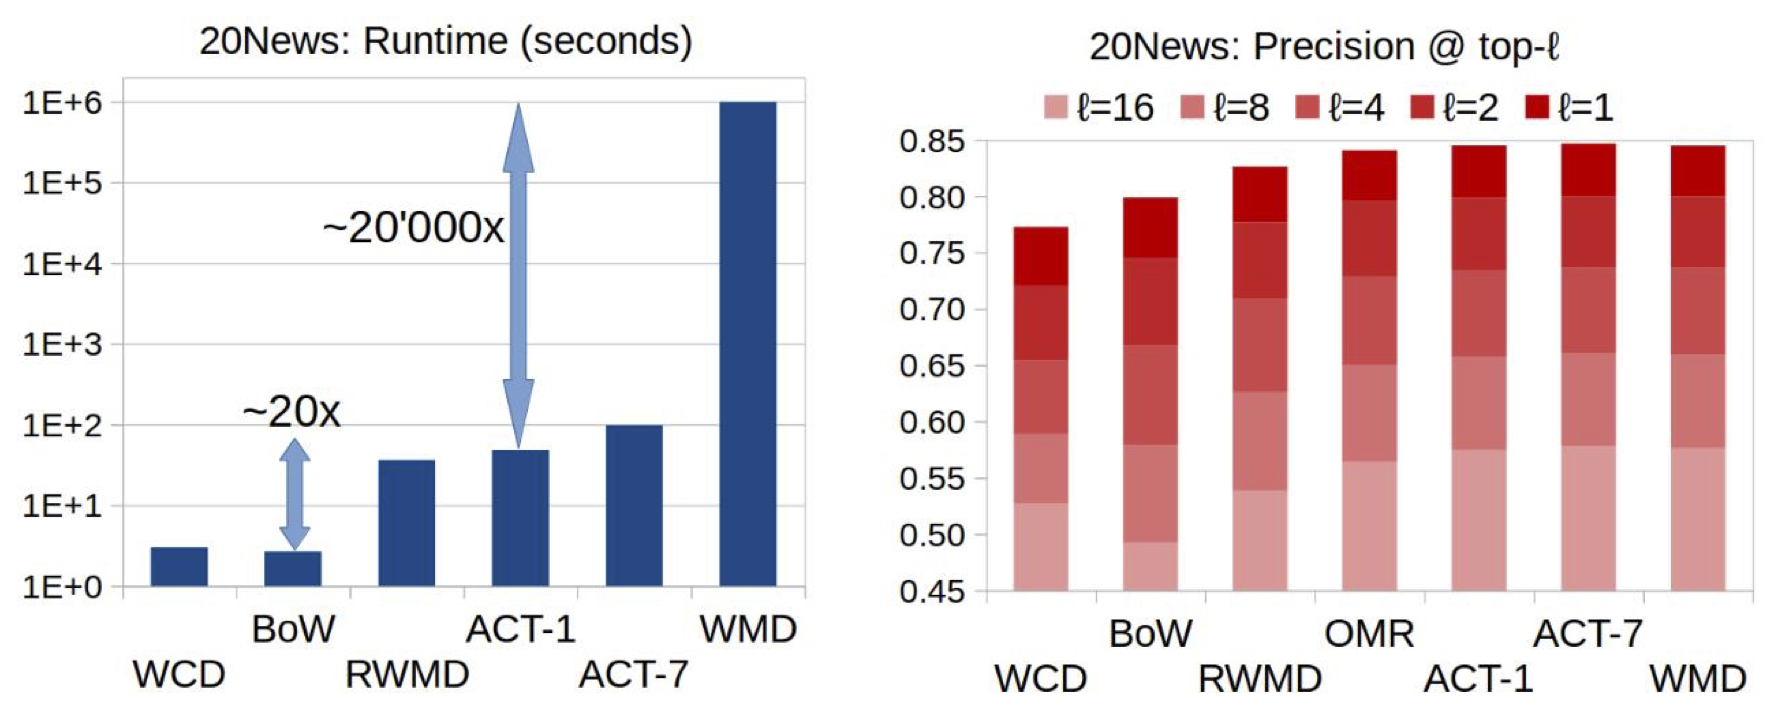 Figure 2 Runtime and Search Precision for the 20News dataset